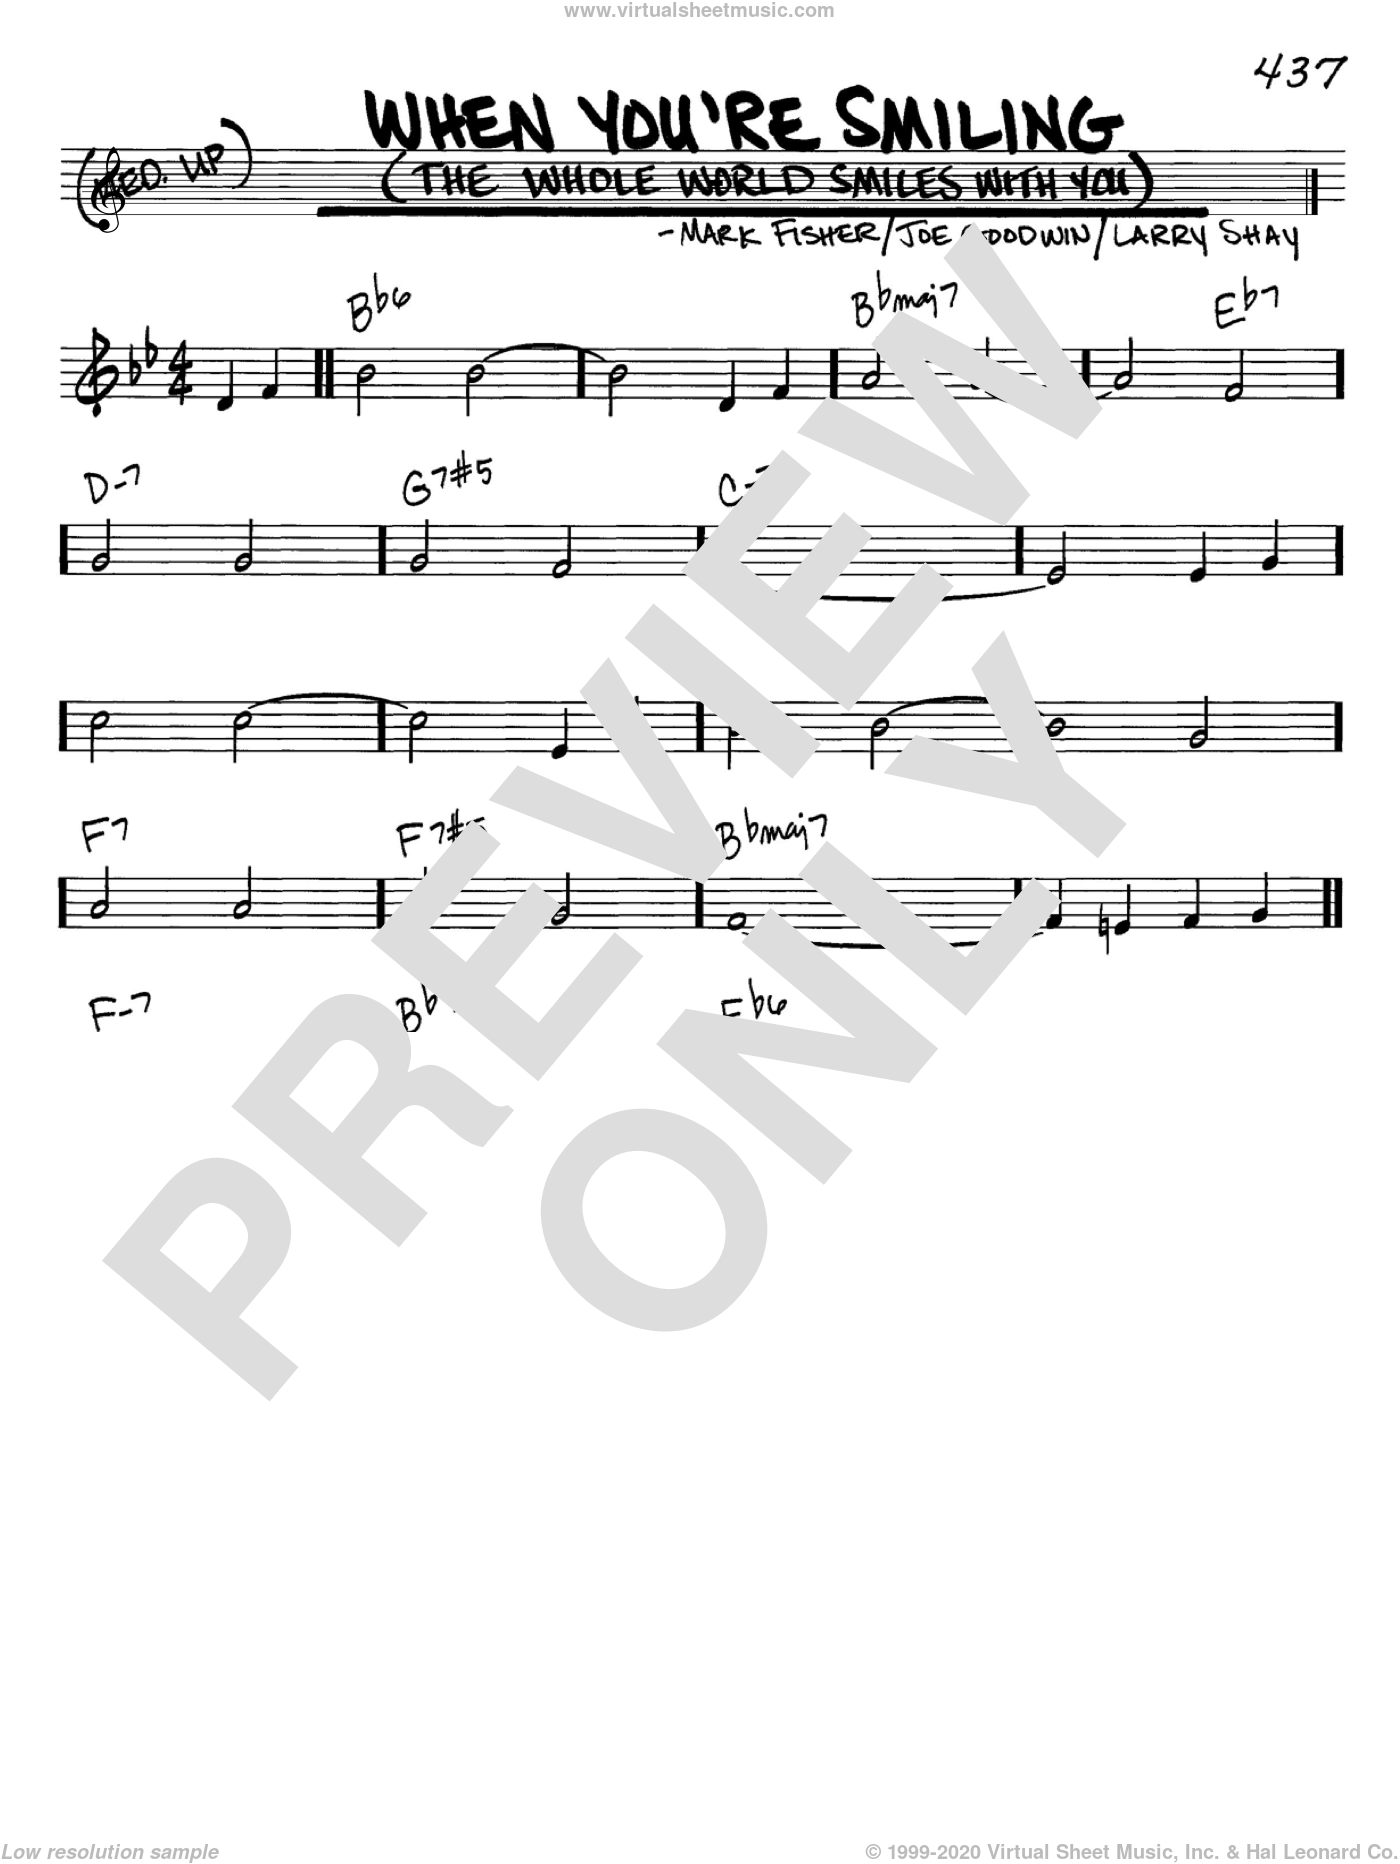 When You're Smiling (The Whole World Smiles With You) sheet music for voice and other instruments (C) by Mark Fisher, Louis Armstrong, Joe Goodwin and Larry Shay